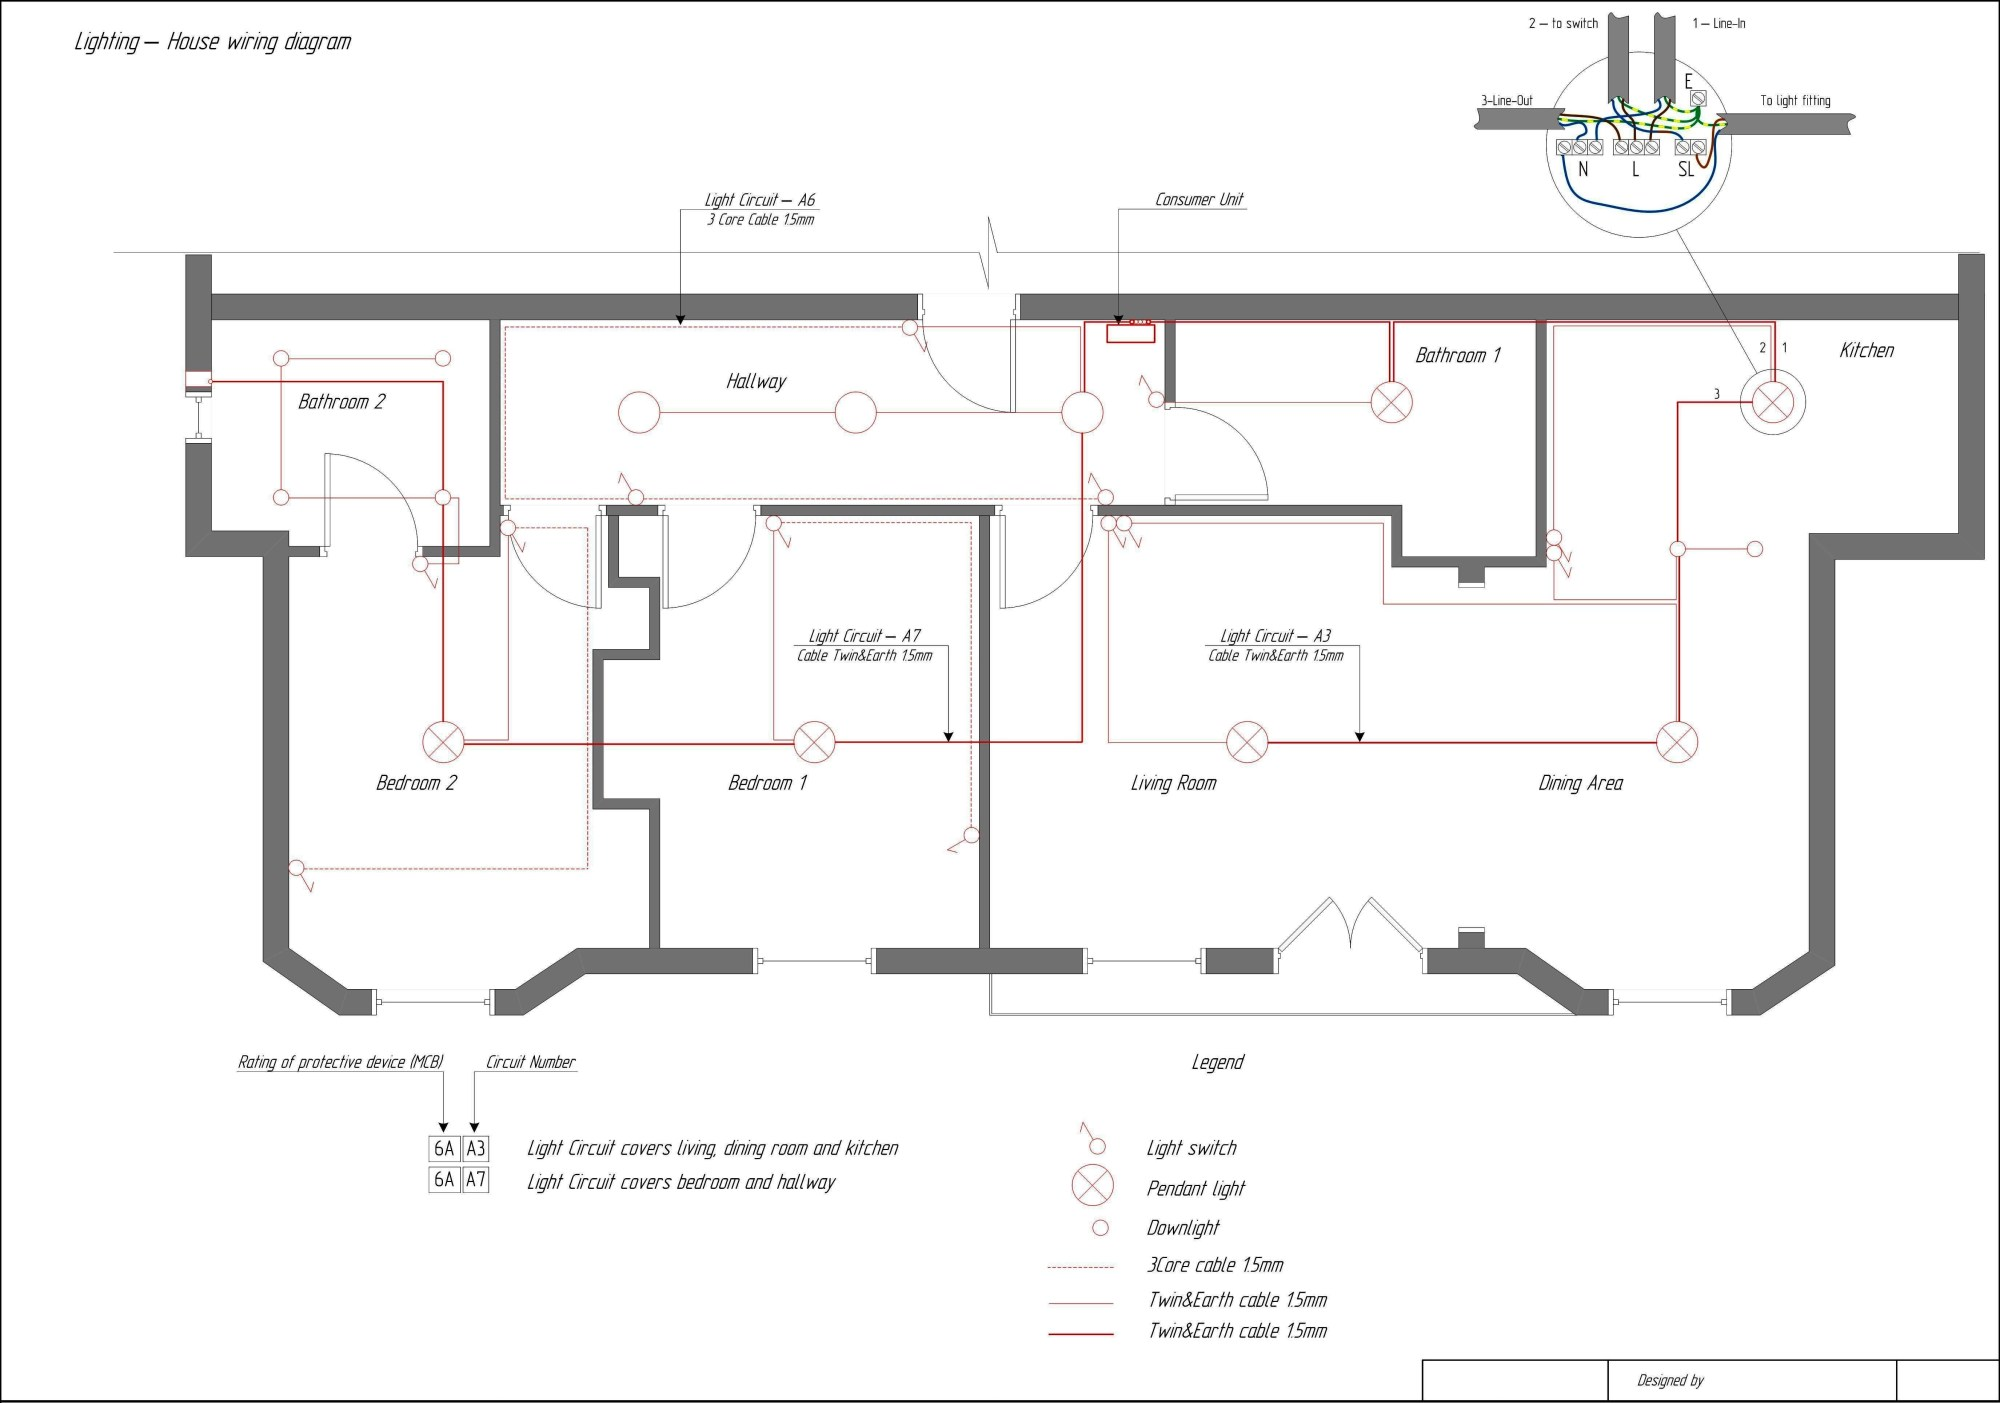 hight resolution of home wiring diagram software wiring diagram apps new house wiring diagram electrical floor plan 2004